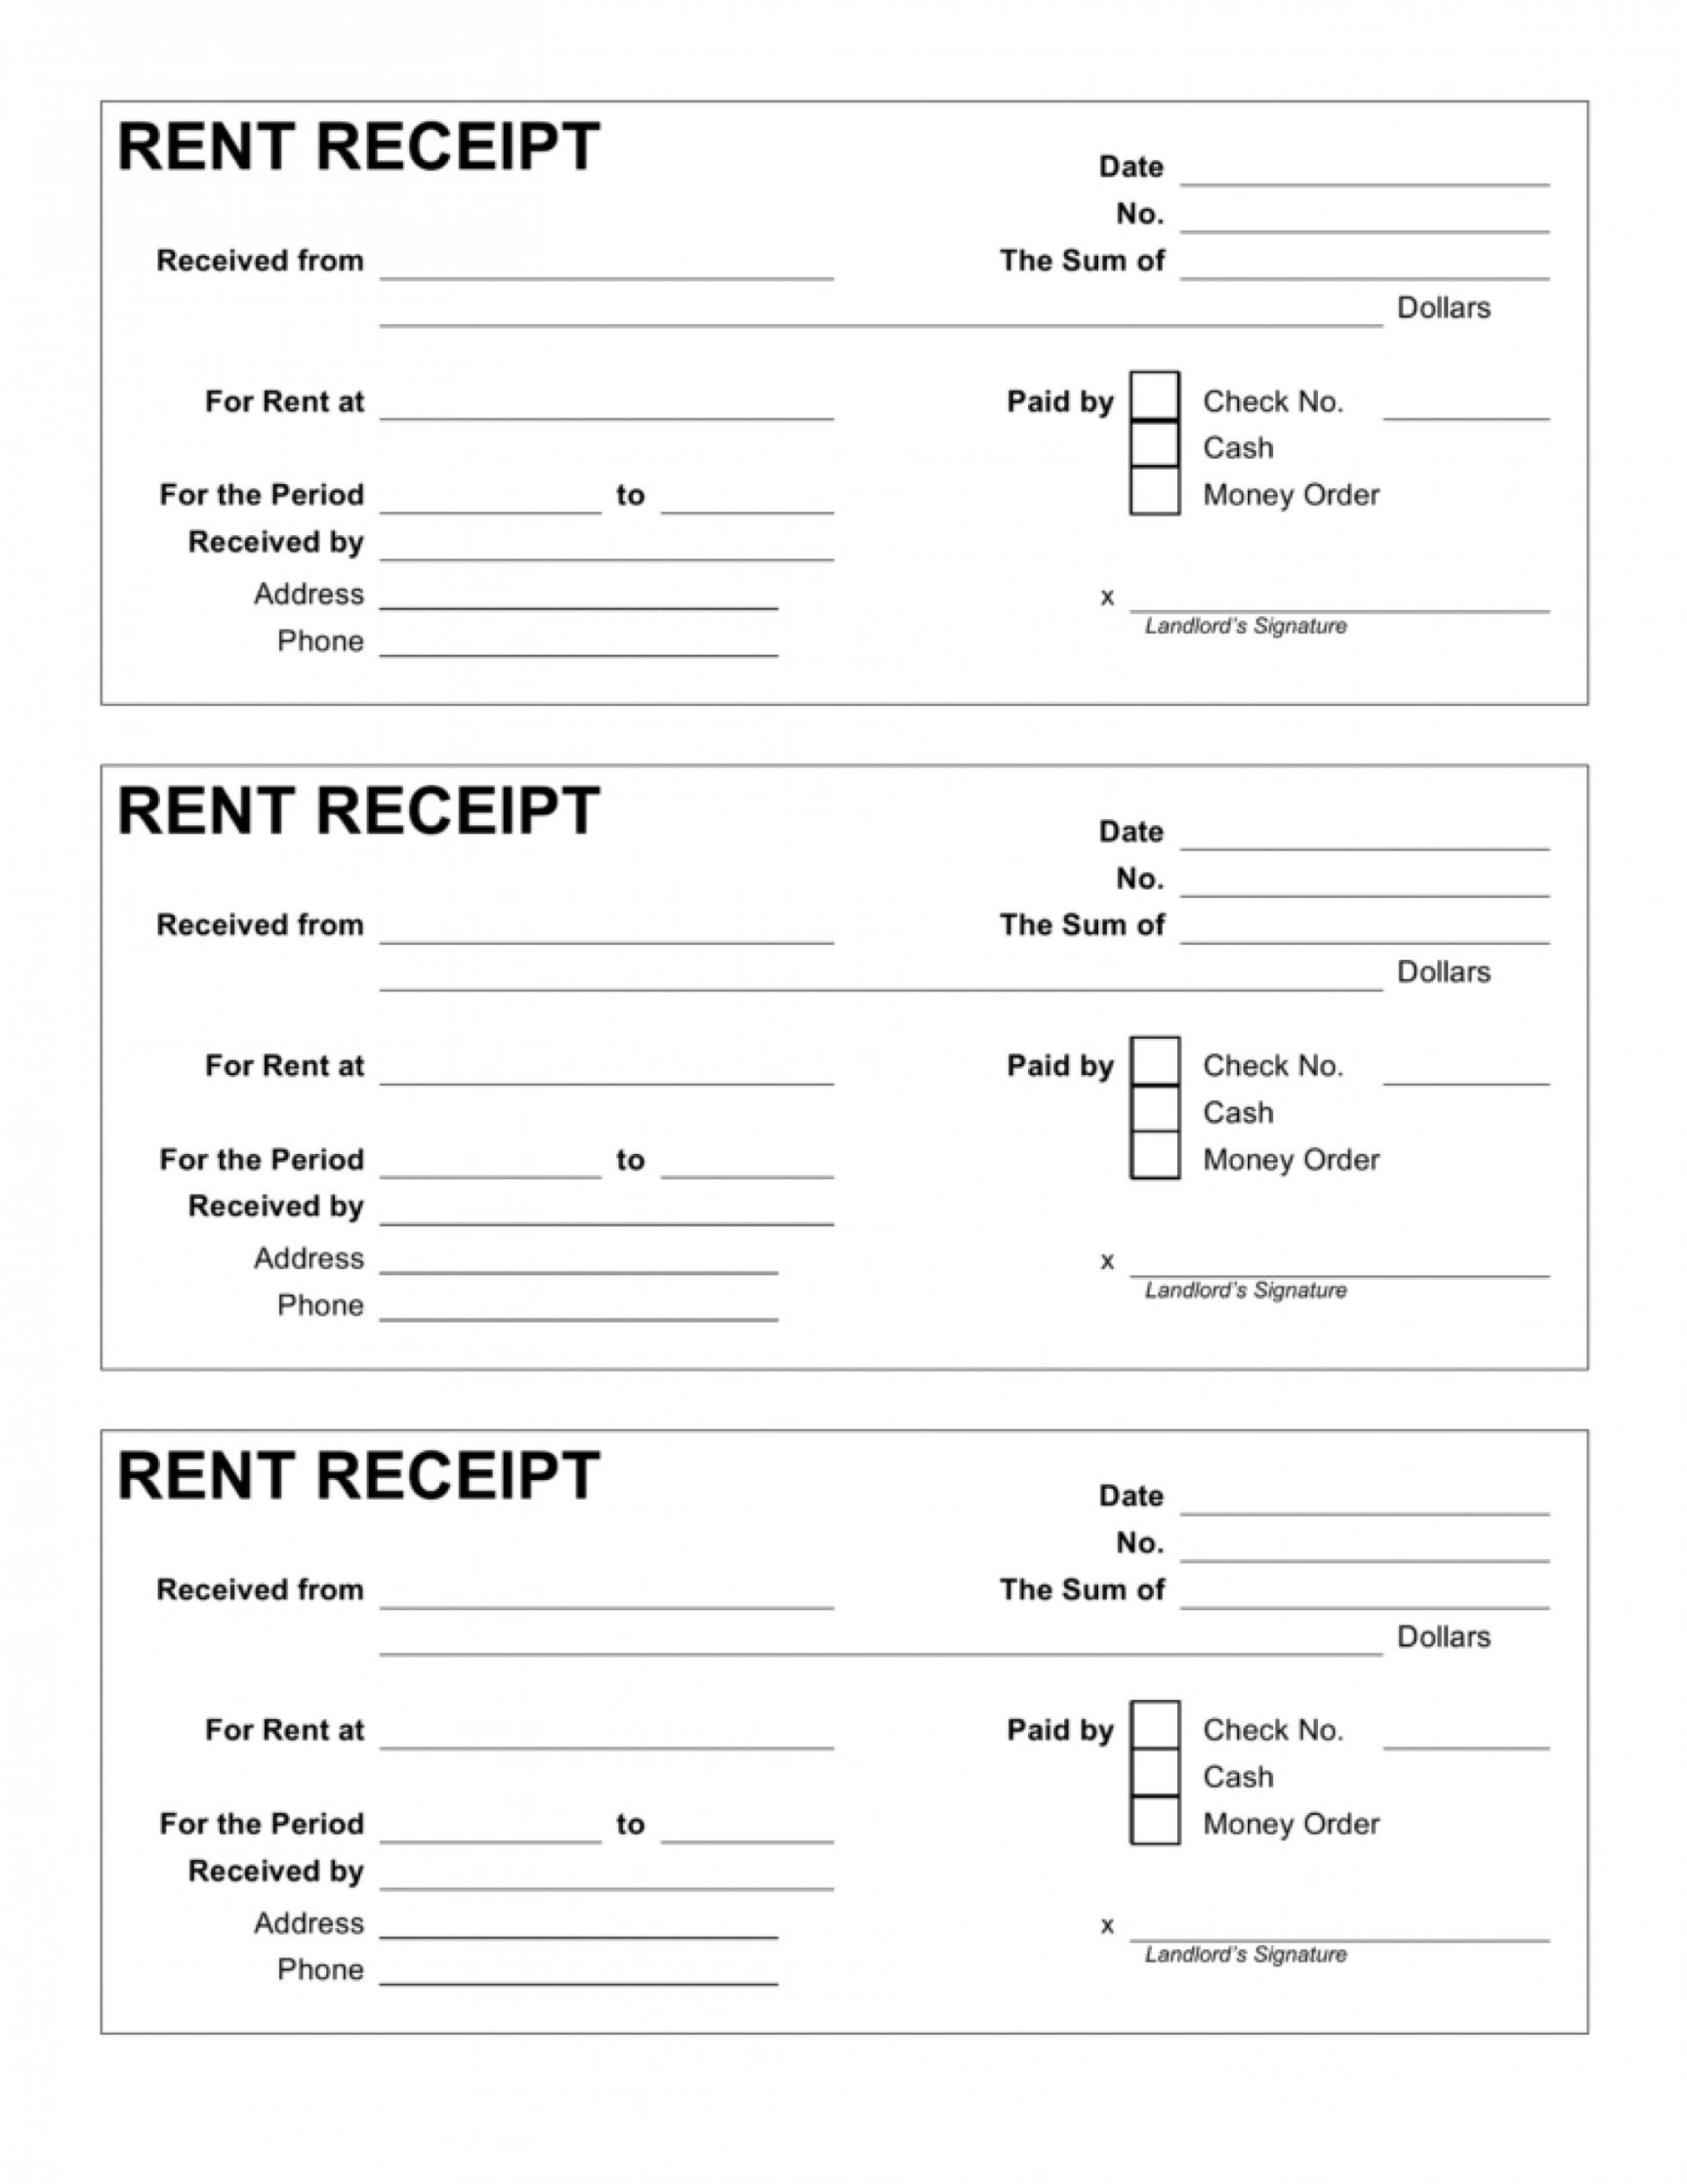 Browse Our Sample Of Rent Receipt Templates Receipt Template Free Receipt Template Being A Landlord